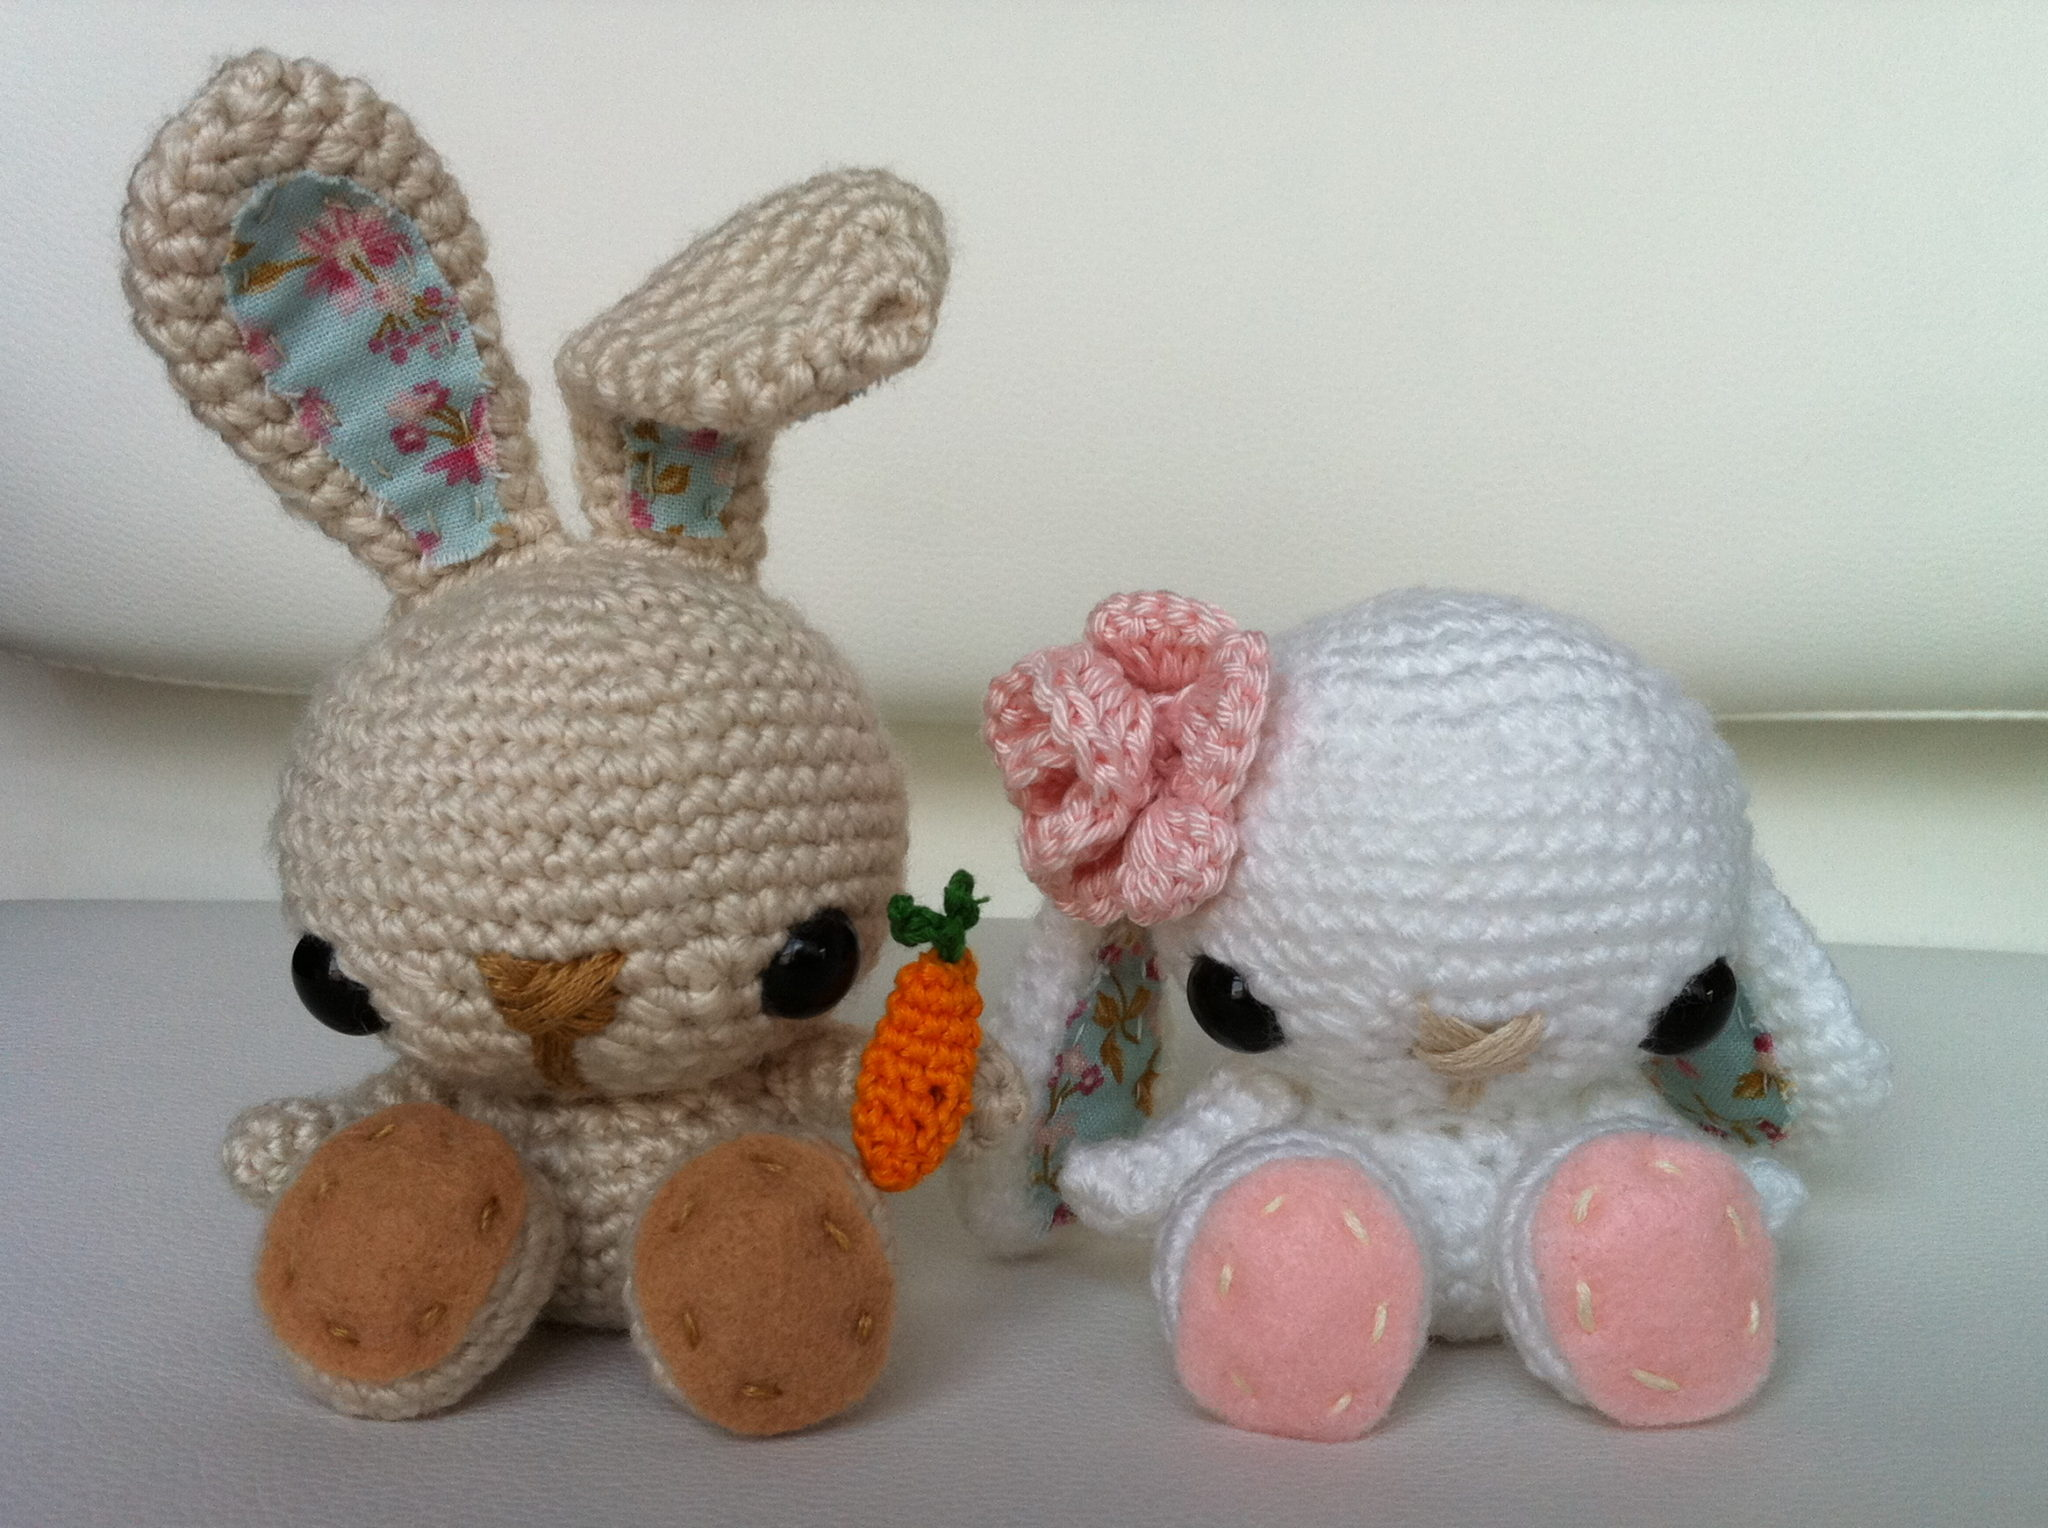 Crochet Bunny - Dutch Rabbit Amigurumi Pattern - Crochet News | 1528x2048